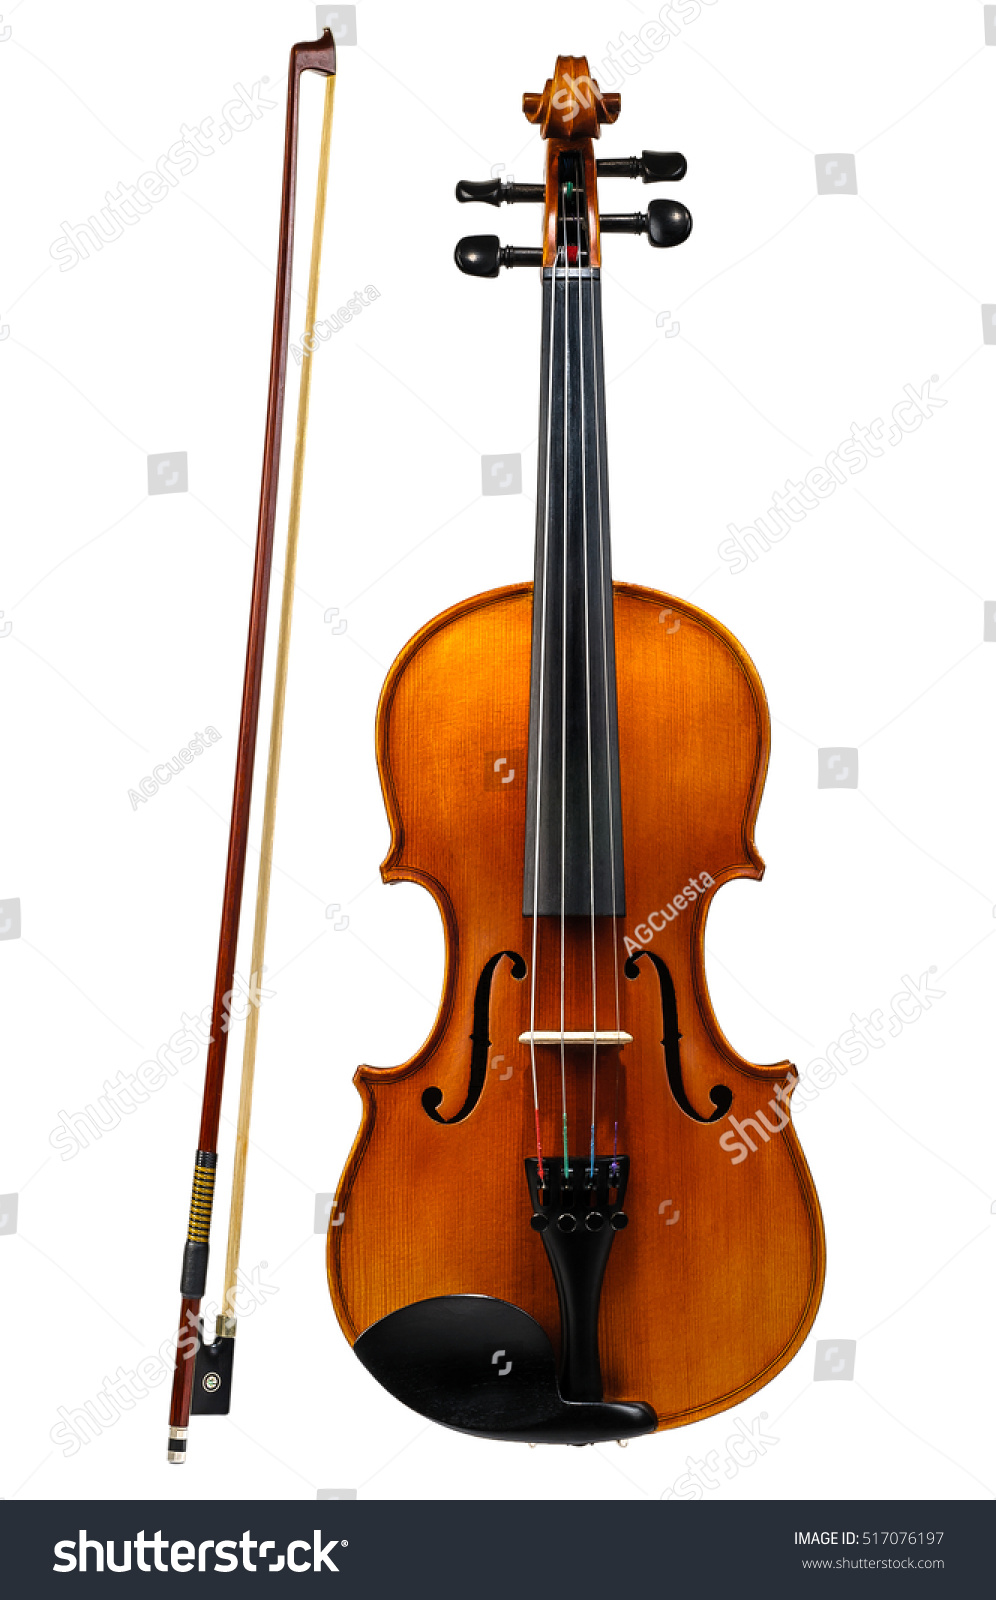 Violin With Bow Isolated On White Background Stock Photo 517076197 : Shutterstock